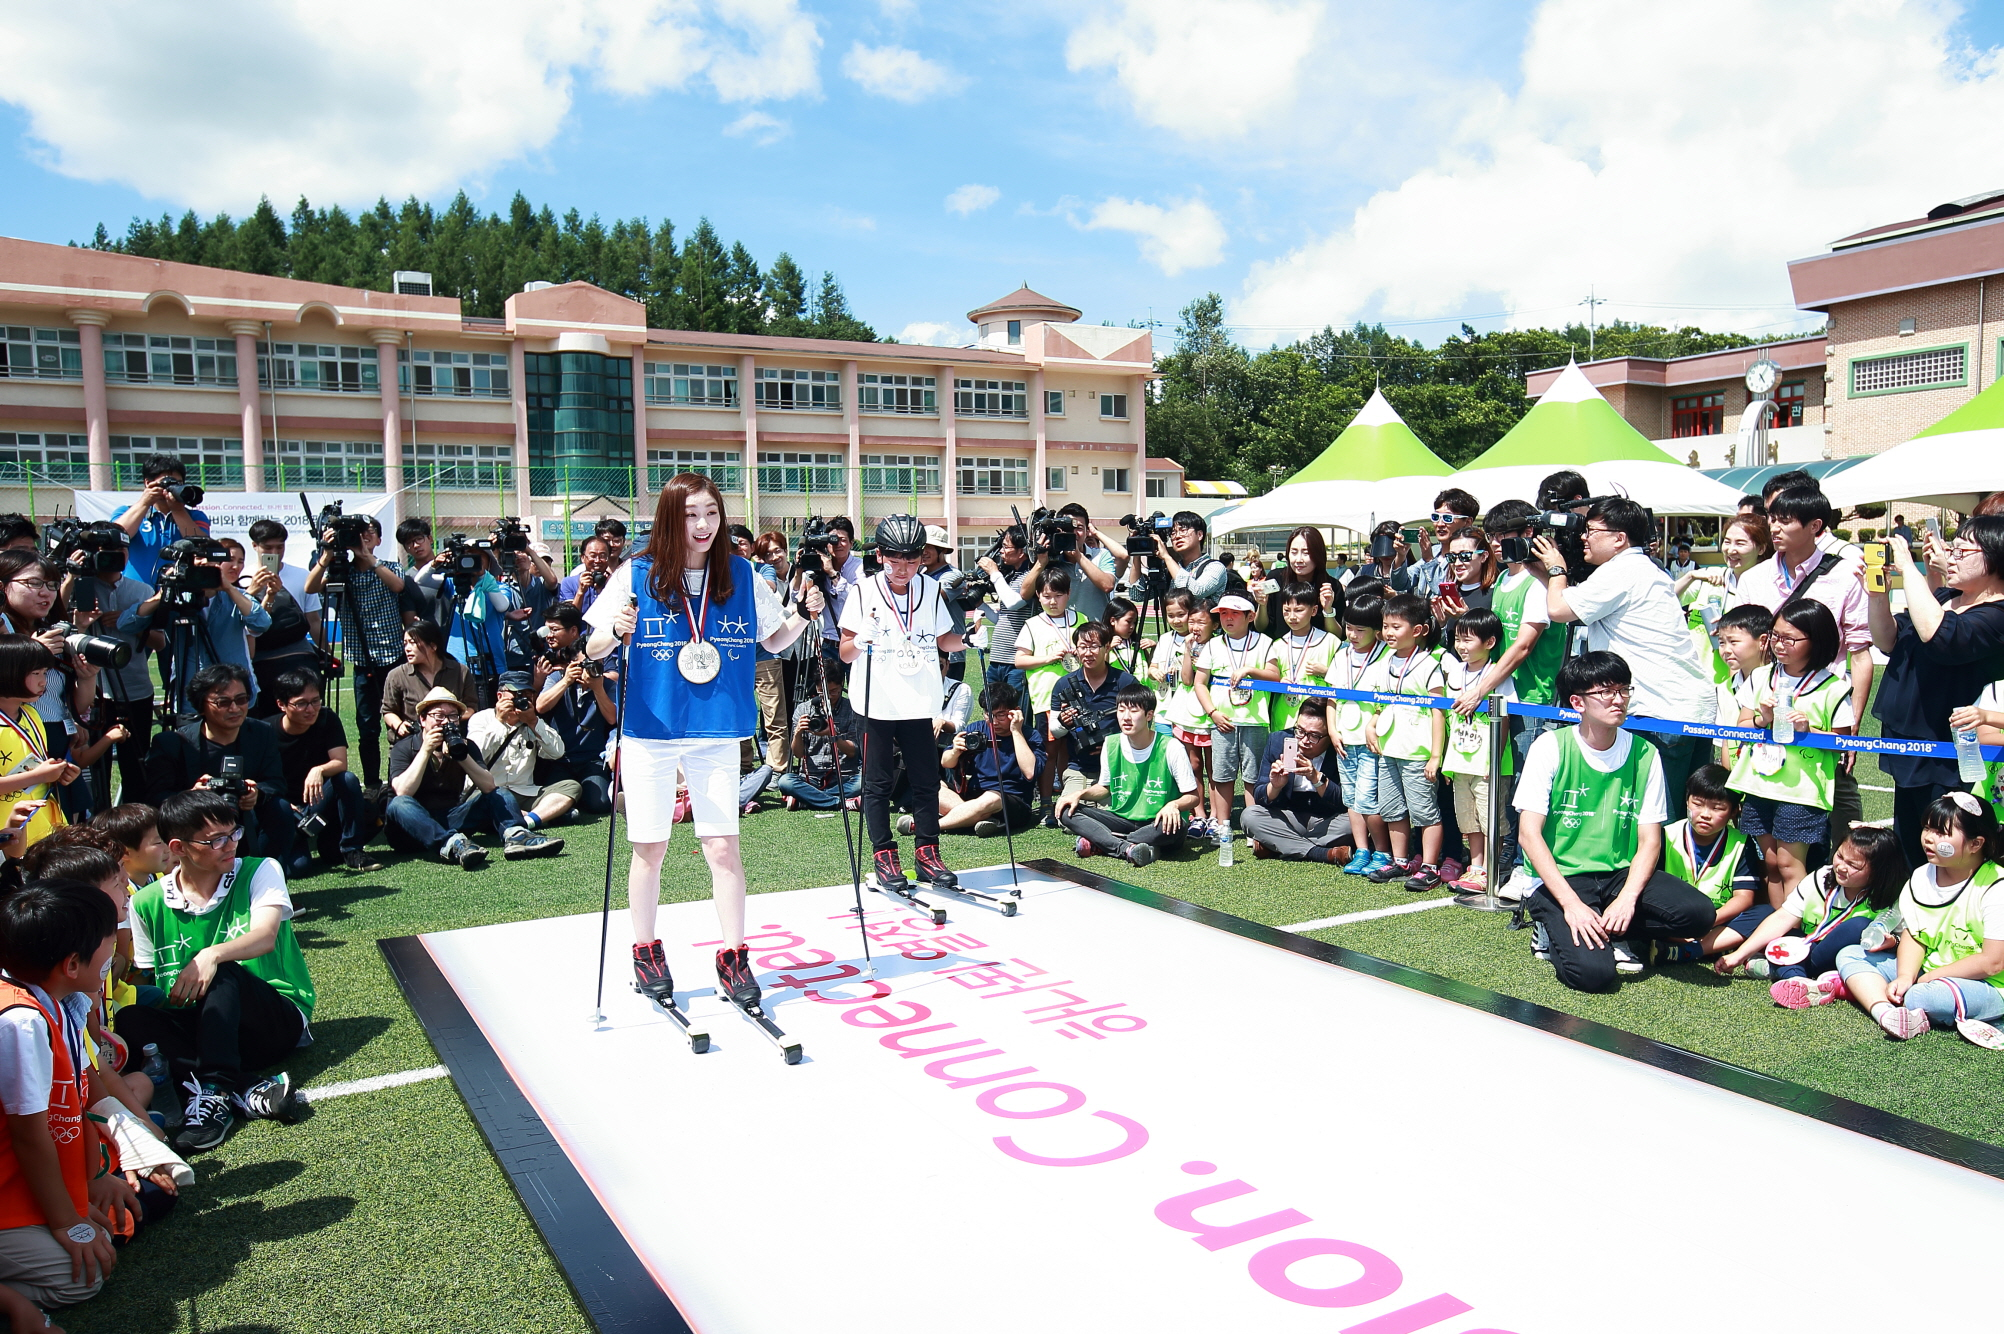 Hon. Ambassador KIM Yu-na competing with an elementary school student in cross country